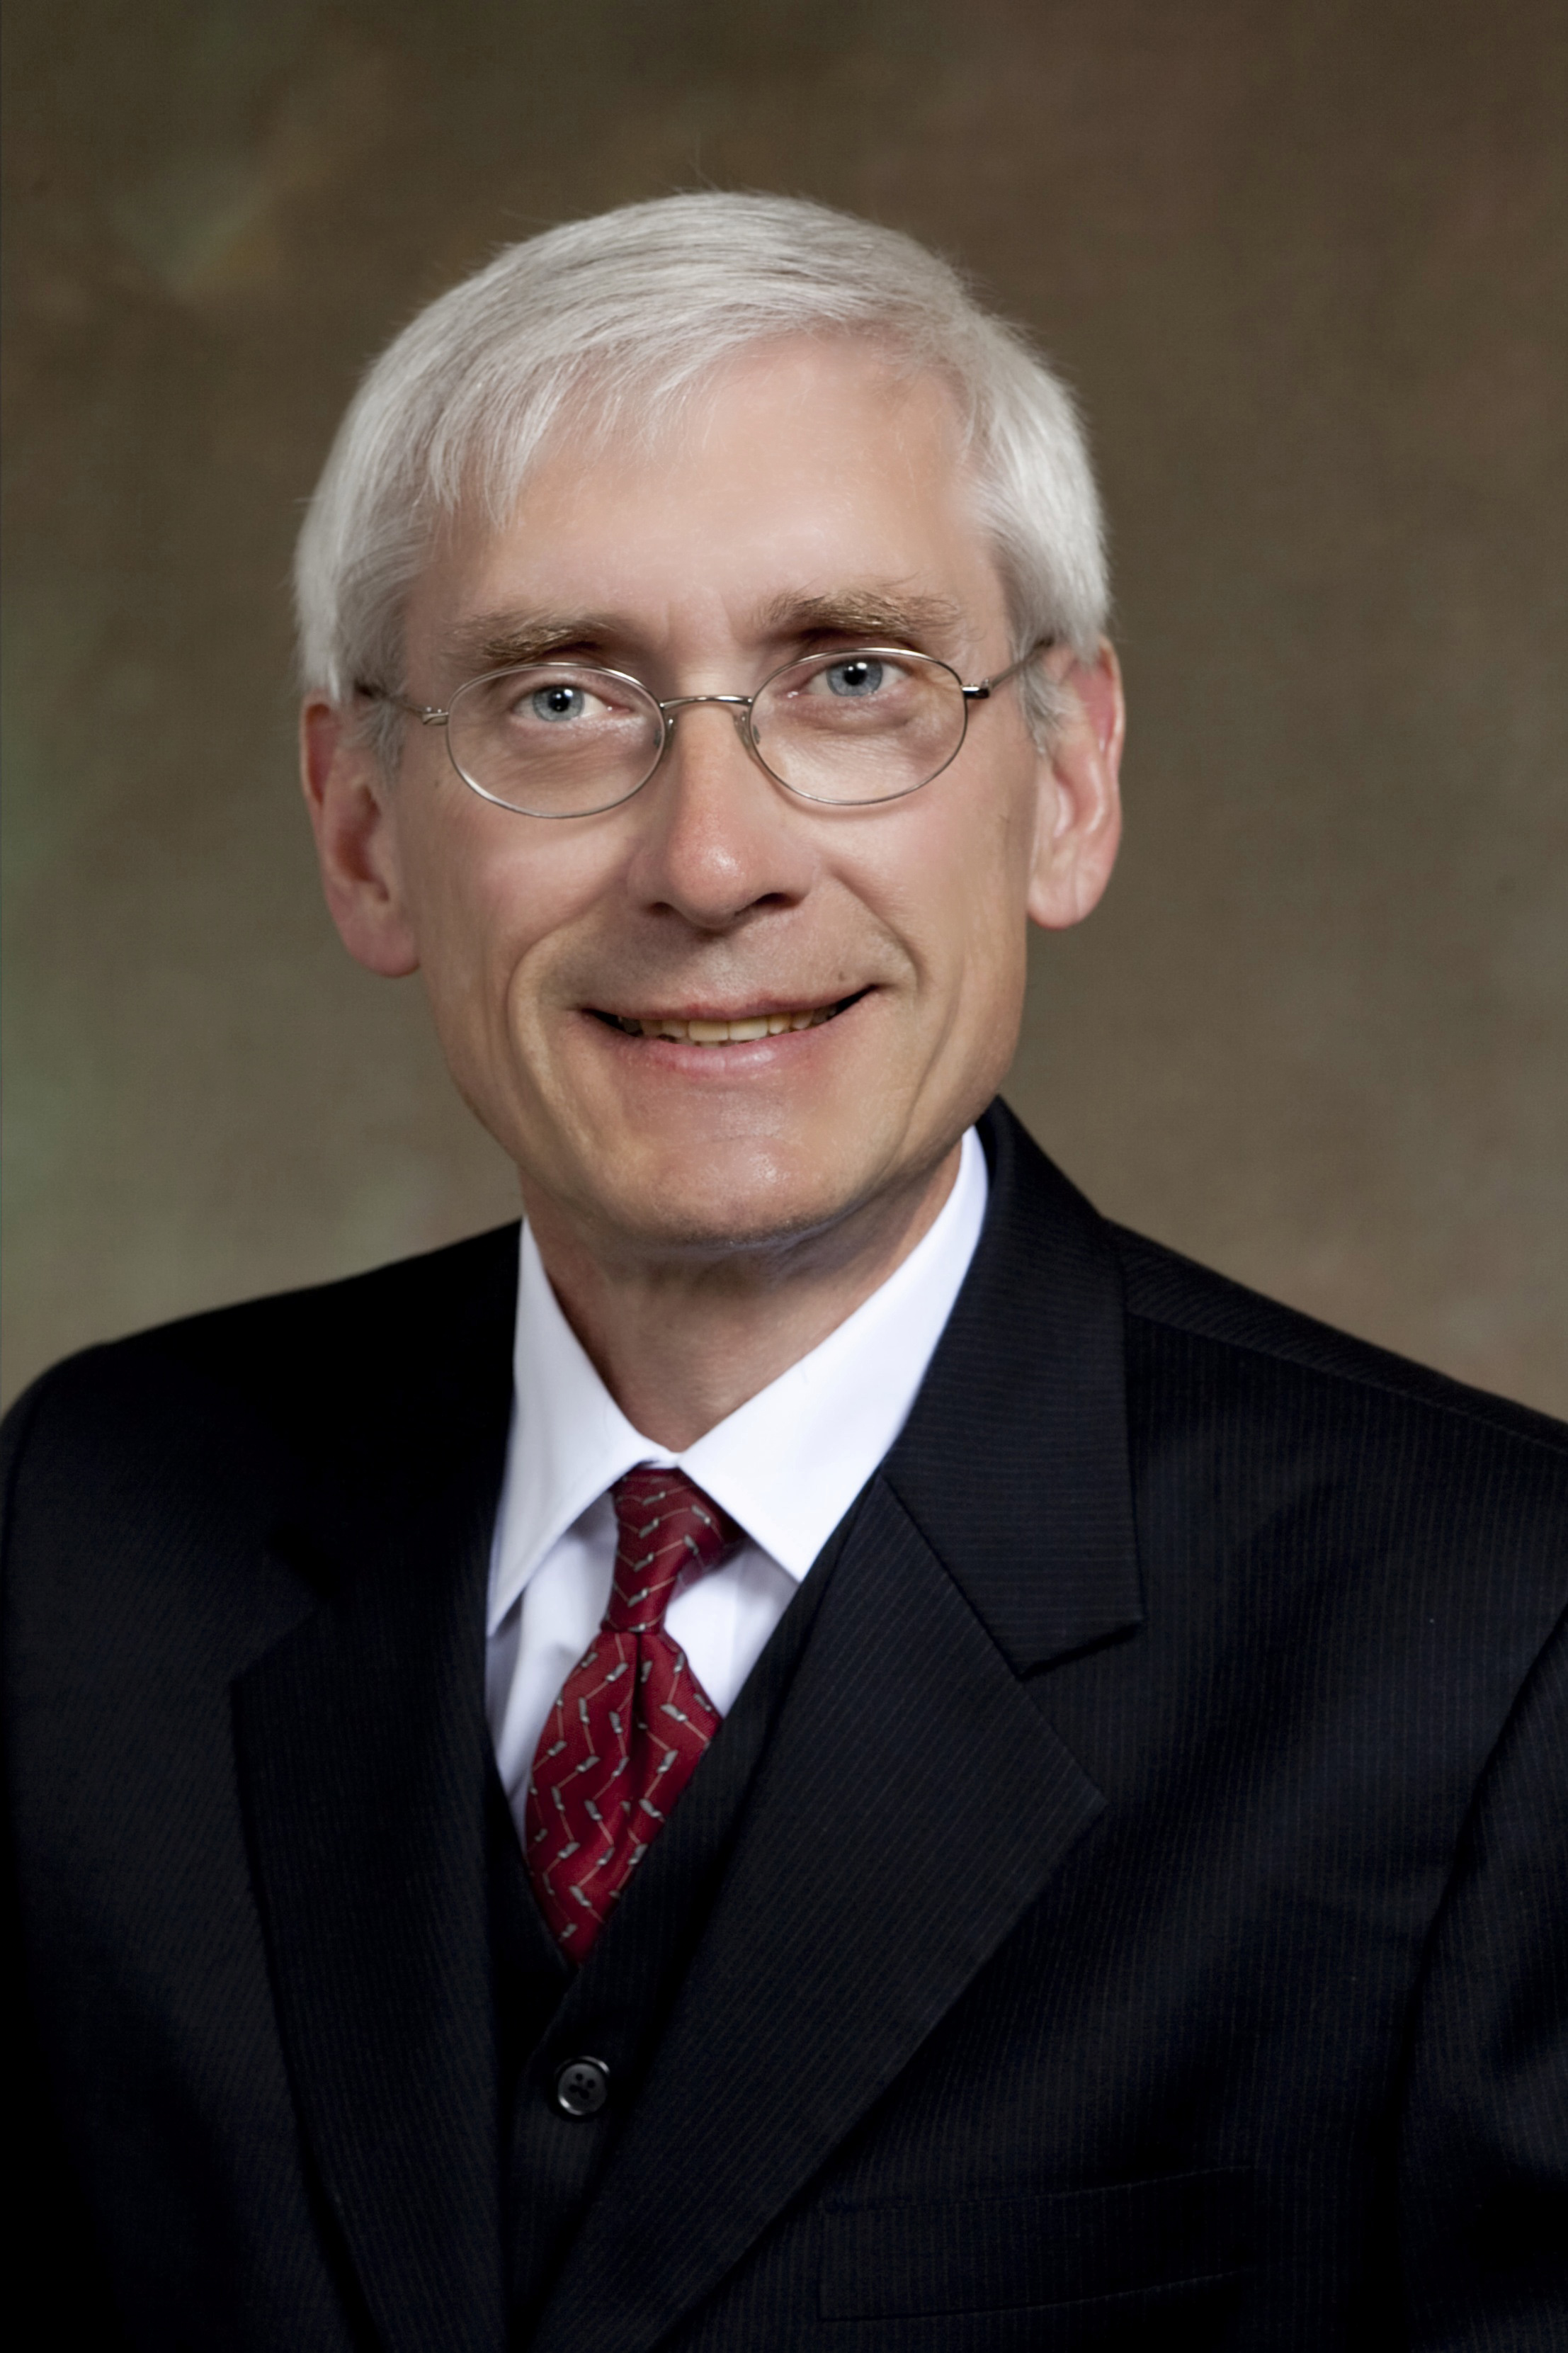 Wisconsin Working Families Party Endorses Tony Evers for State Superintendent of Public Instruction